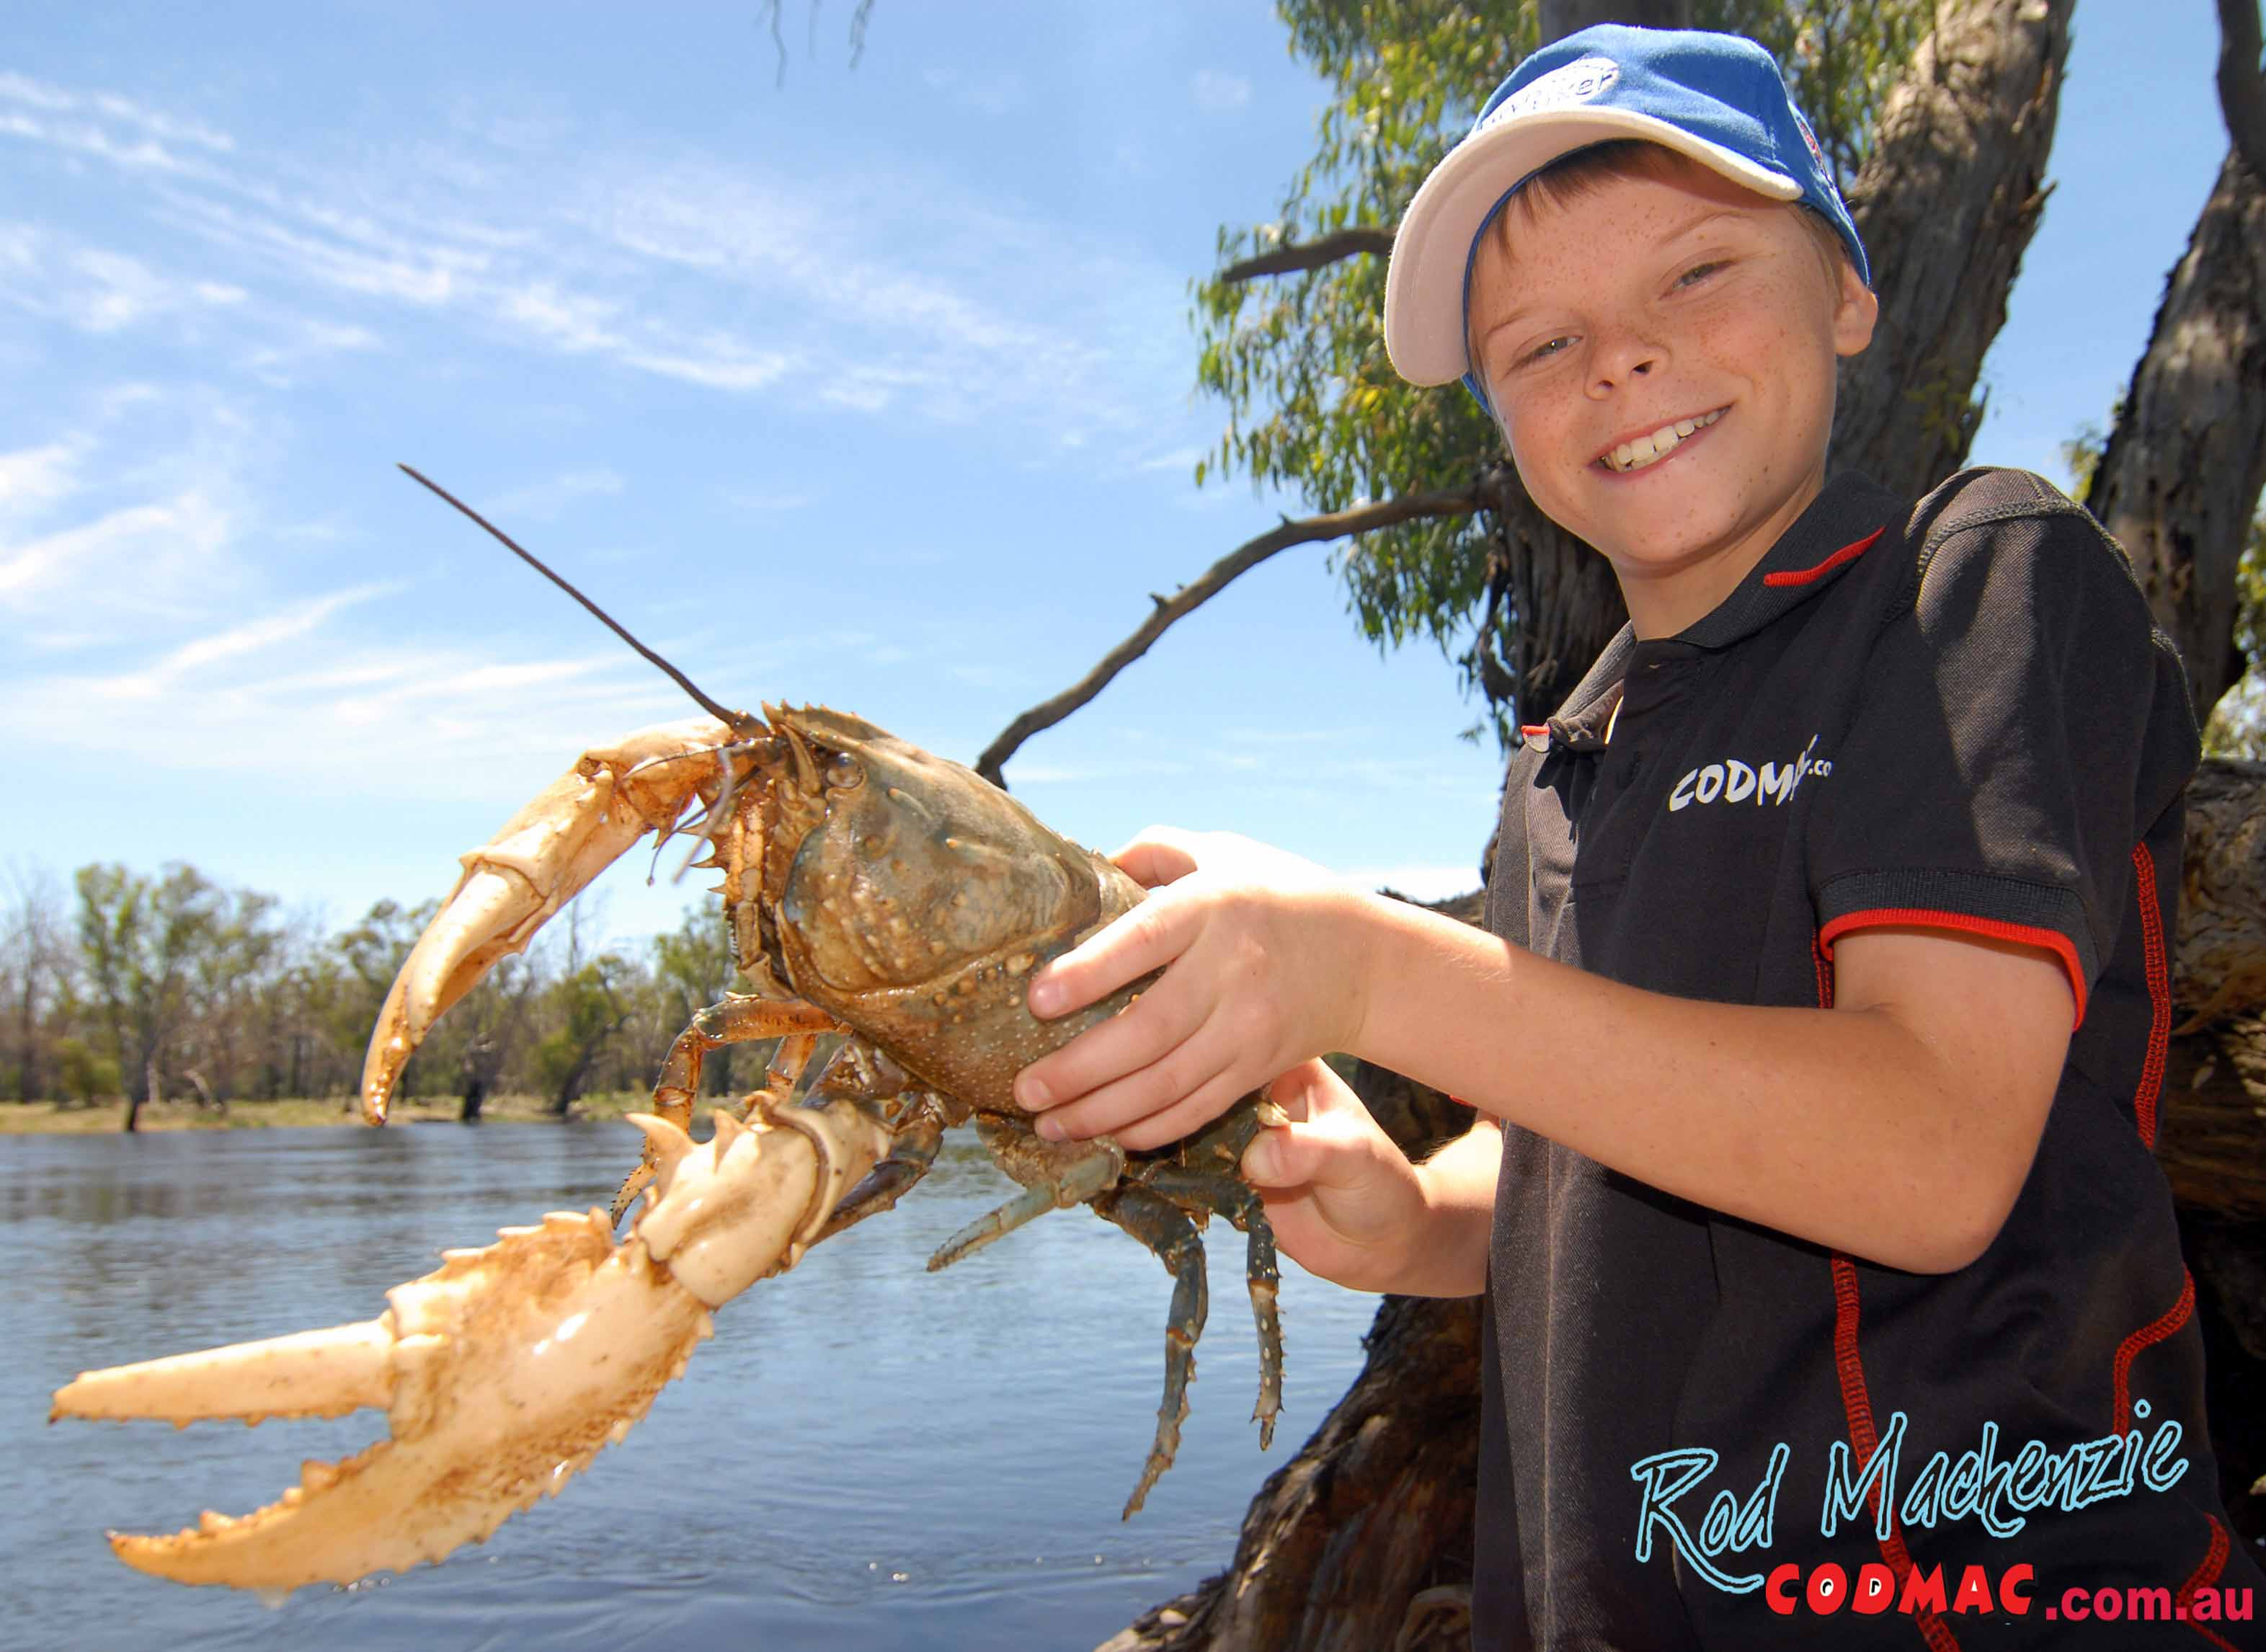 how to mail live spiny crayfish